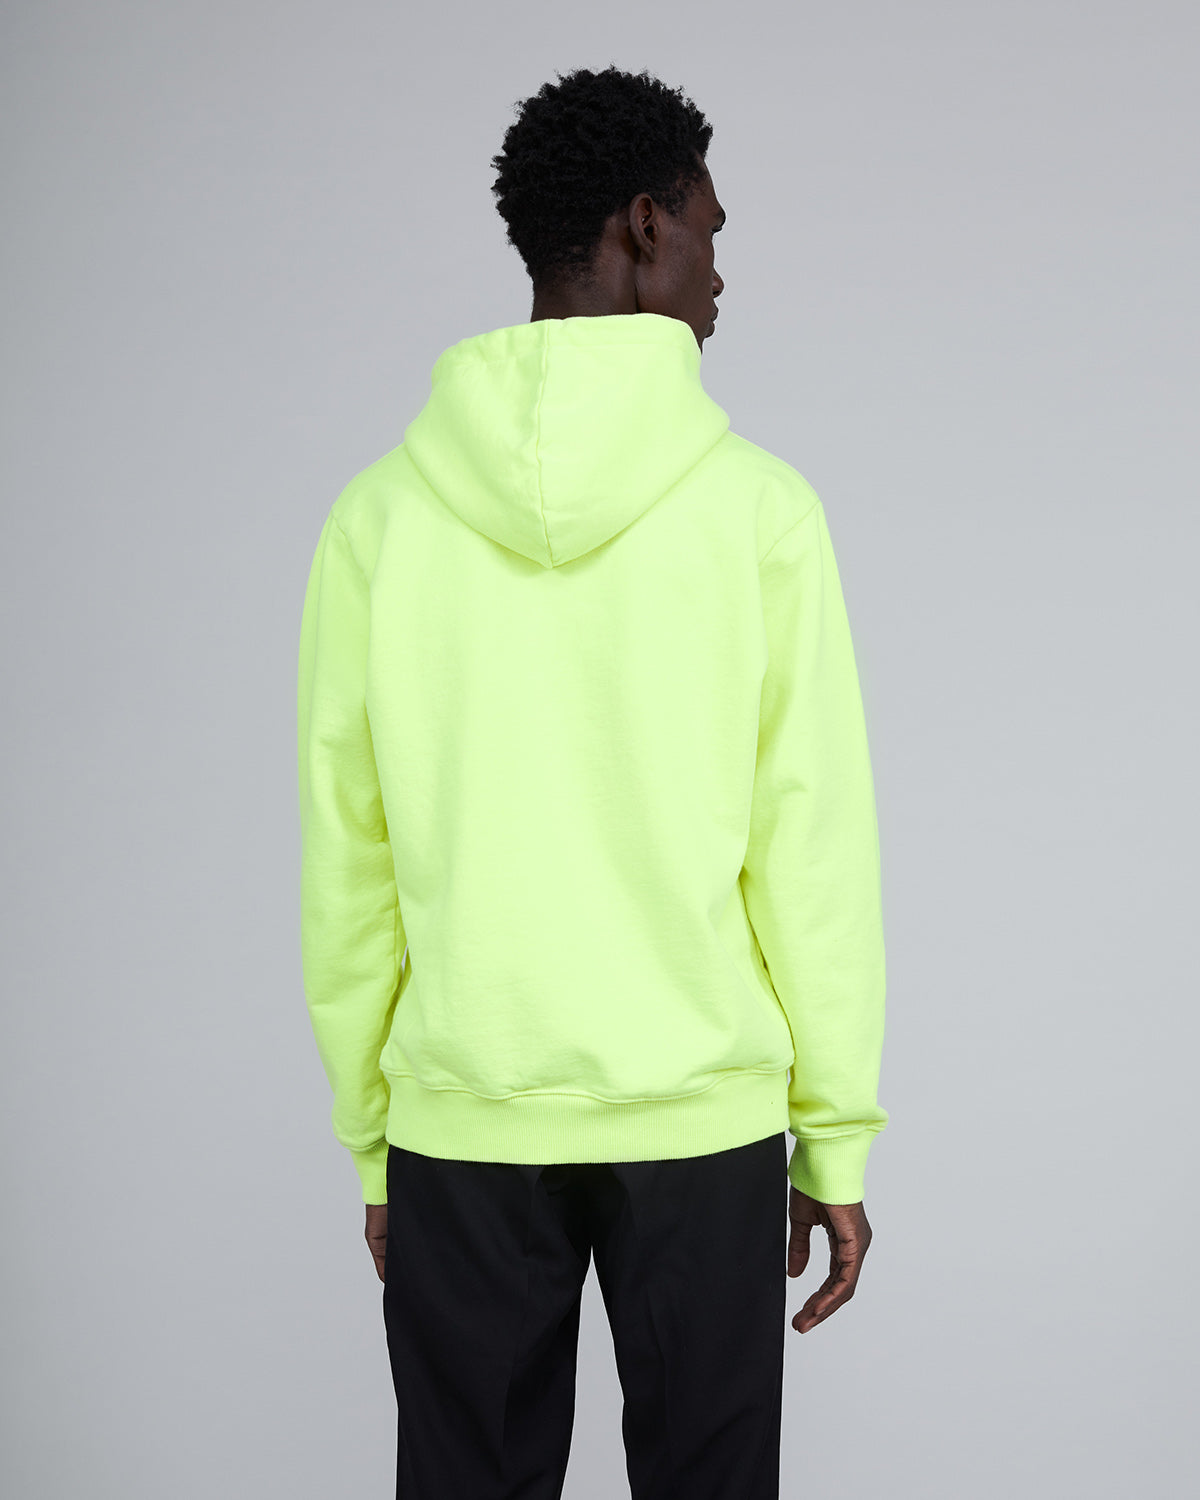 ØLÅF Italic Hoodie Neon Yellow, Portugese fabric, New Fleece Fabric, Post Wash, Fine Ribbed Color, 100% Cotton, Made in Portugal